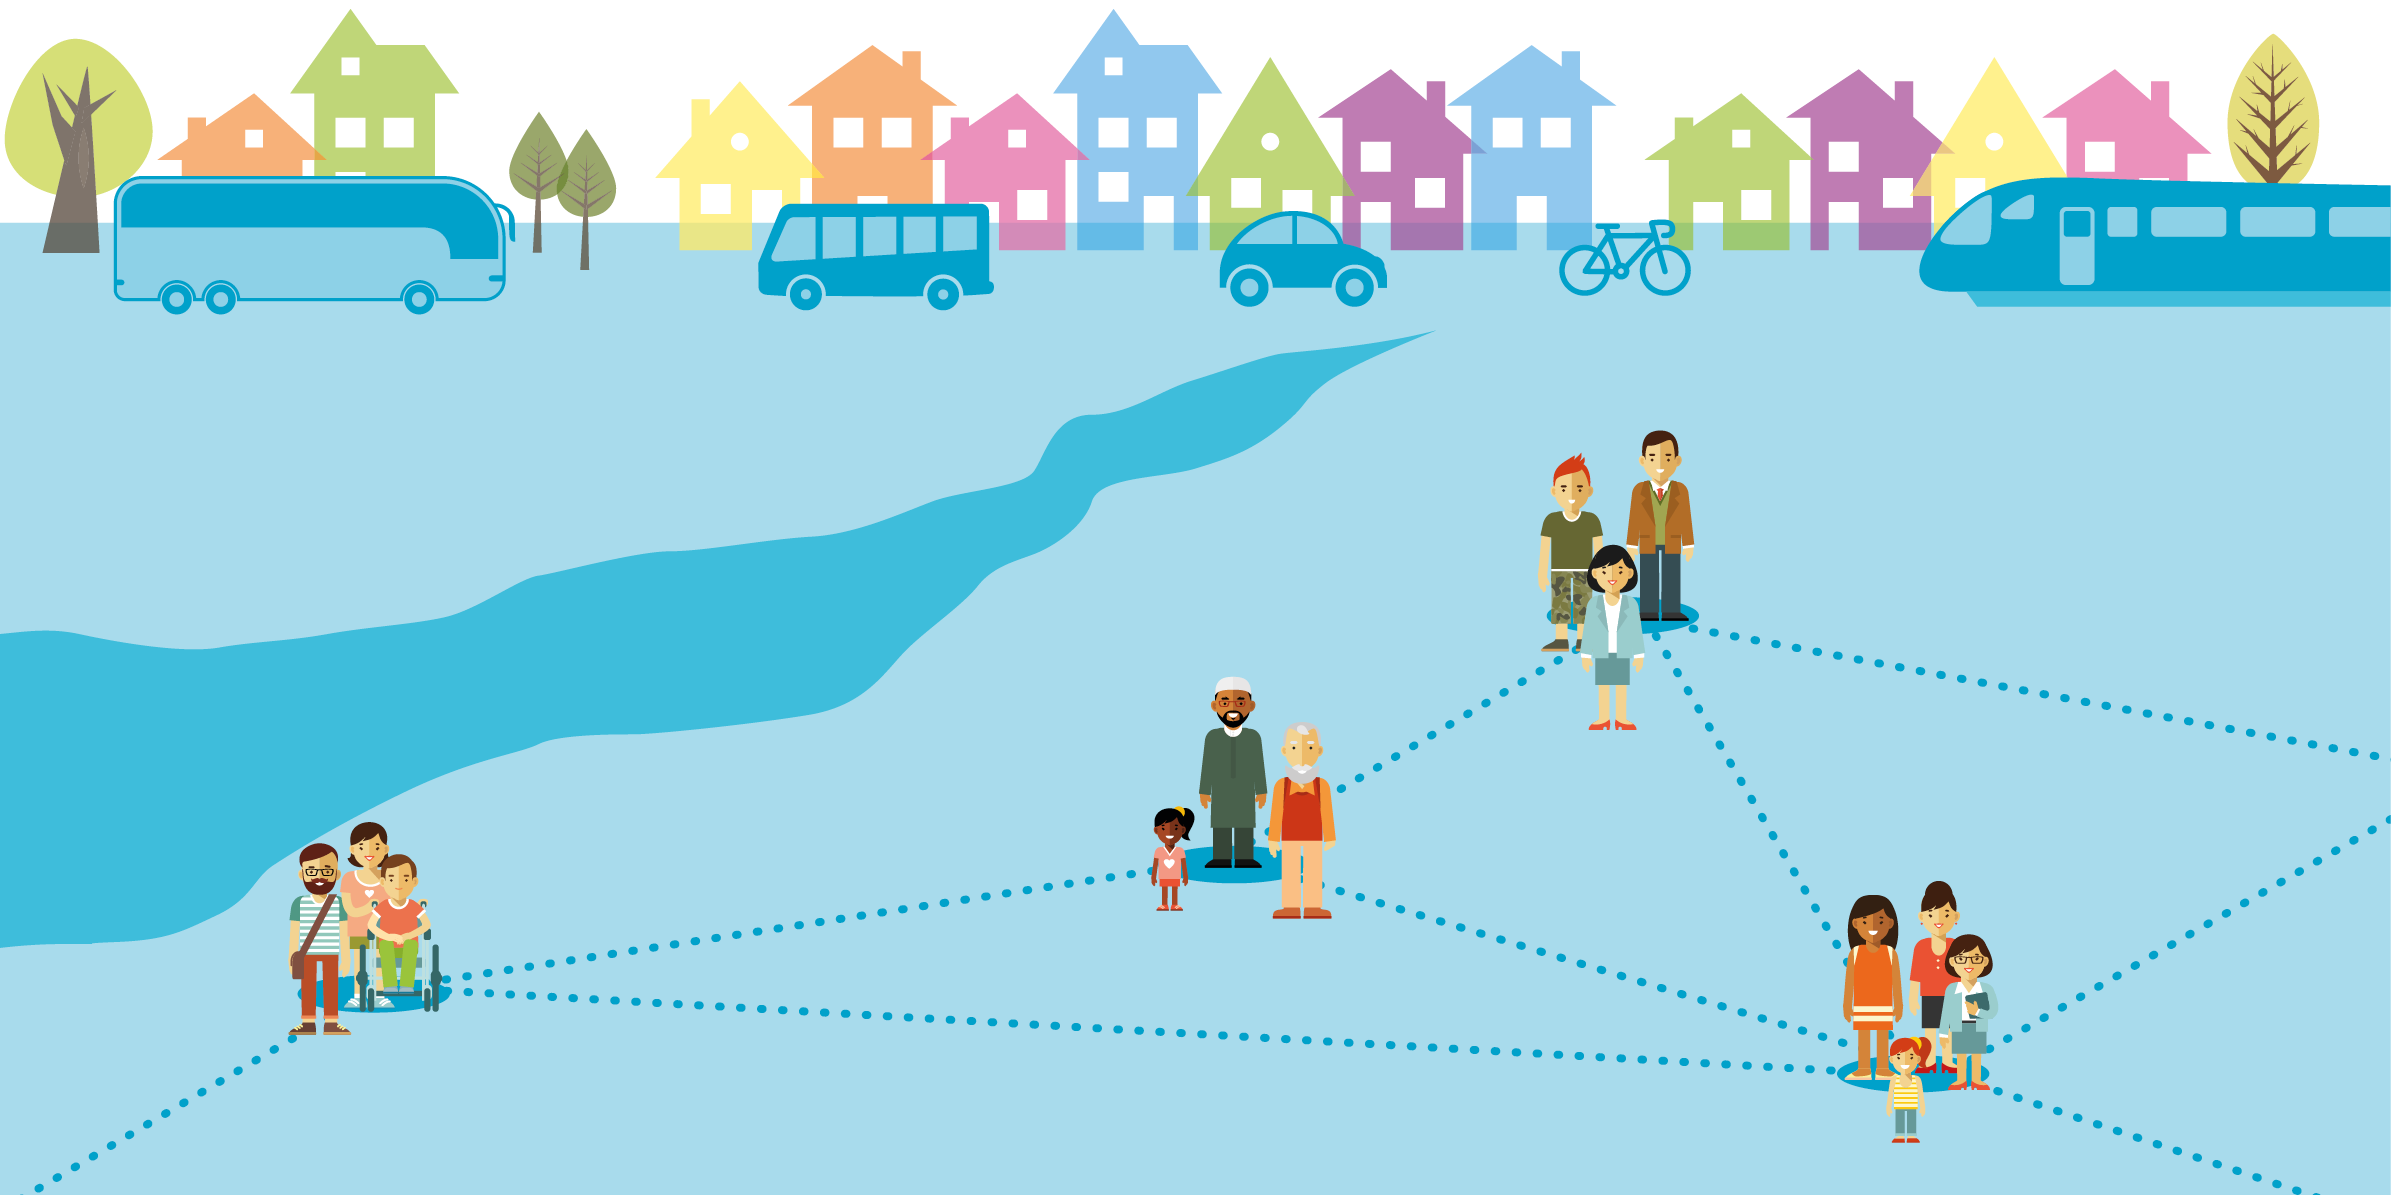 West of England Combined Authority consultation background image illustration showing different groups of people connected via dotted lines and a coach, bus, car, bicycle and train in the background in front of a colourful line of houses and trees.